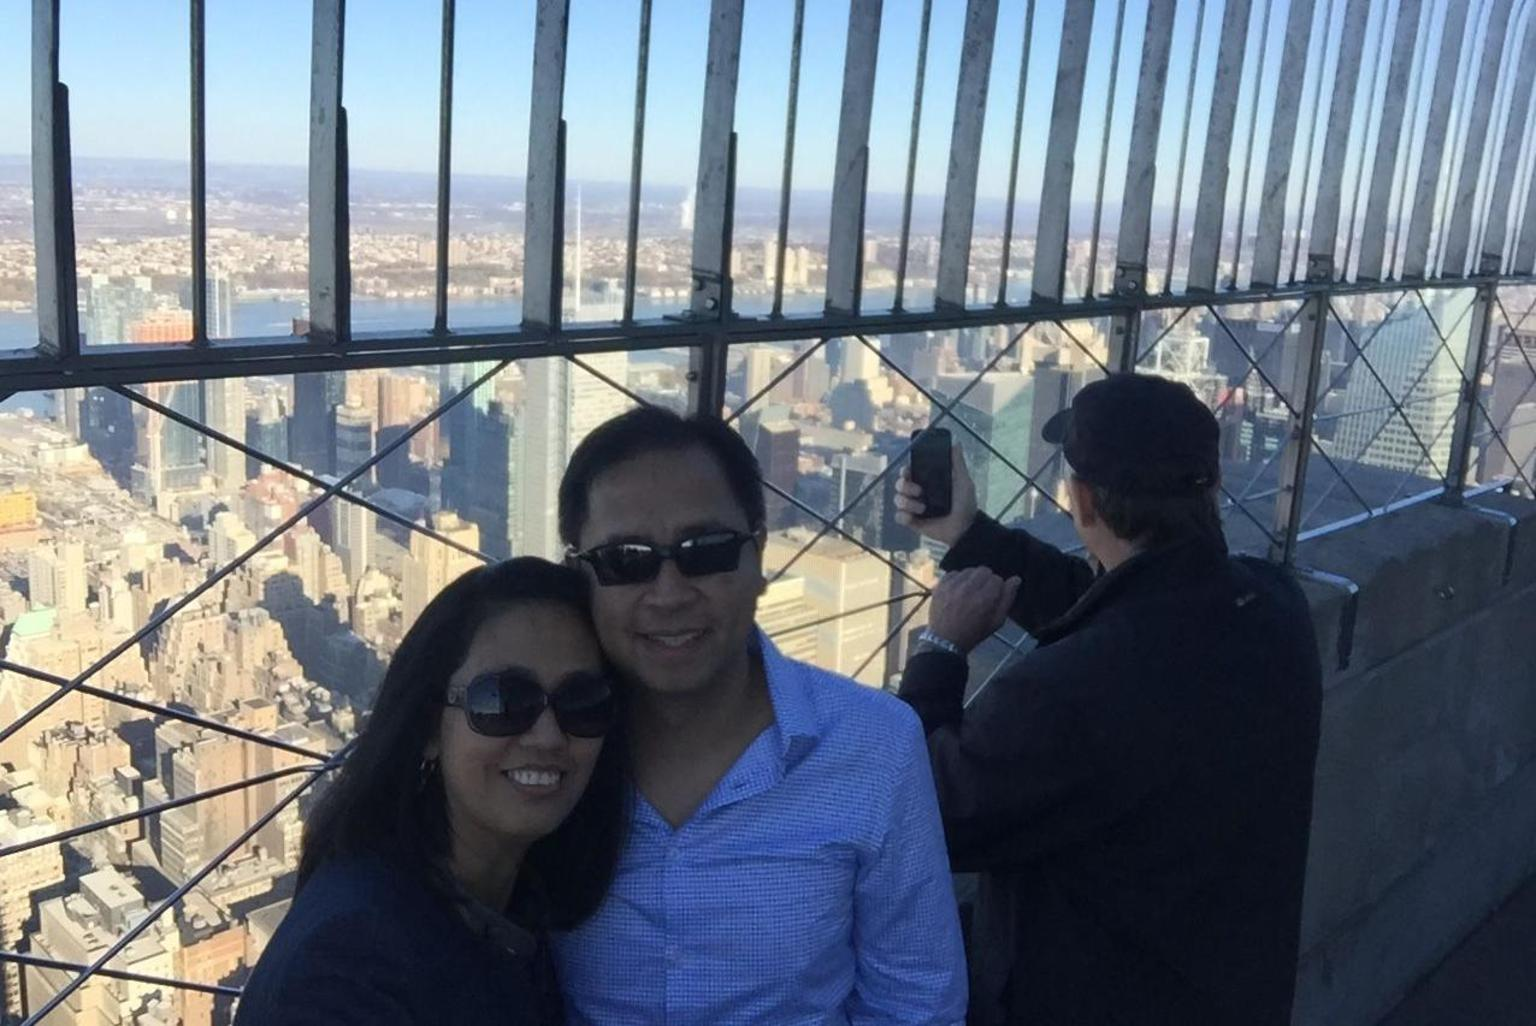 at the Empire state building